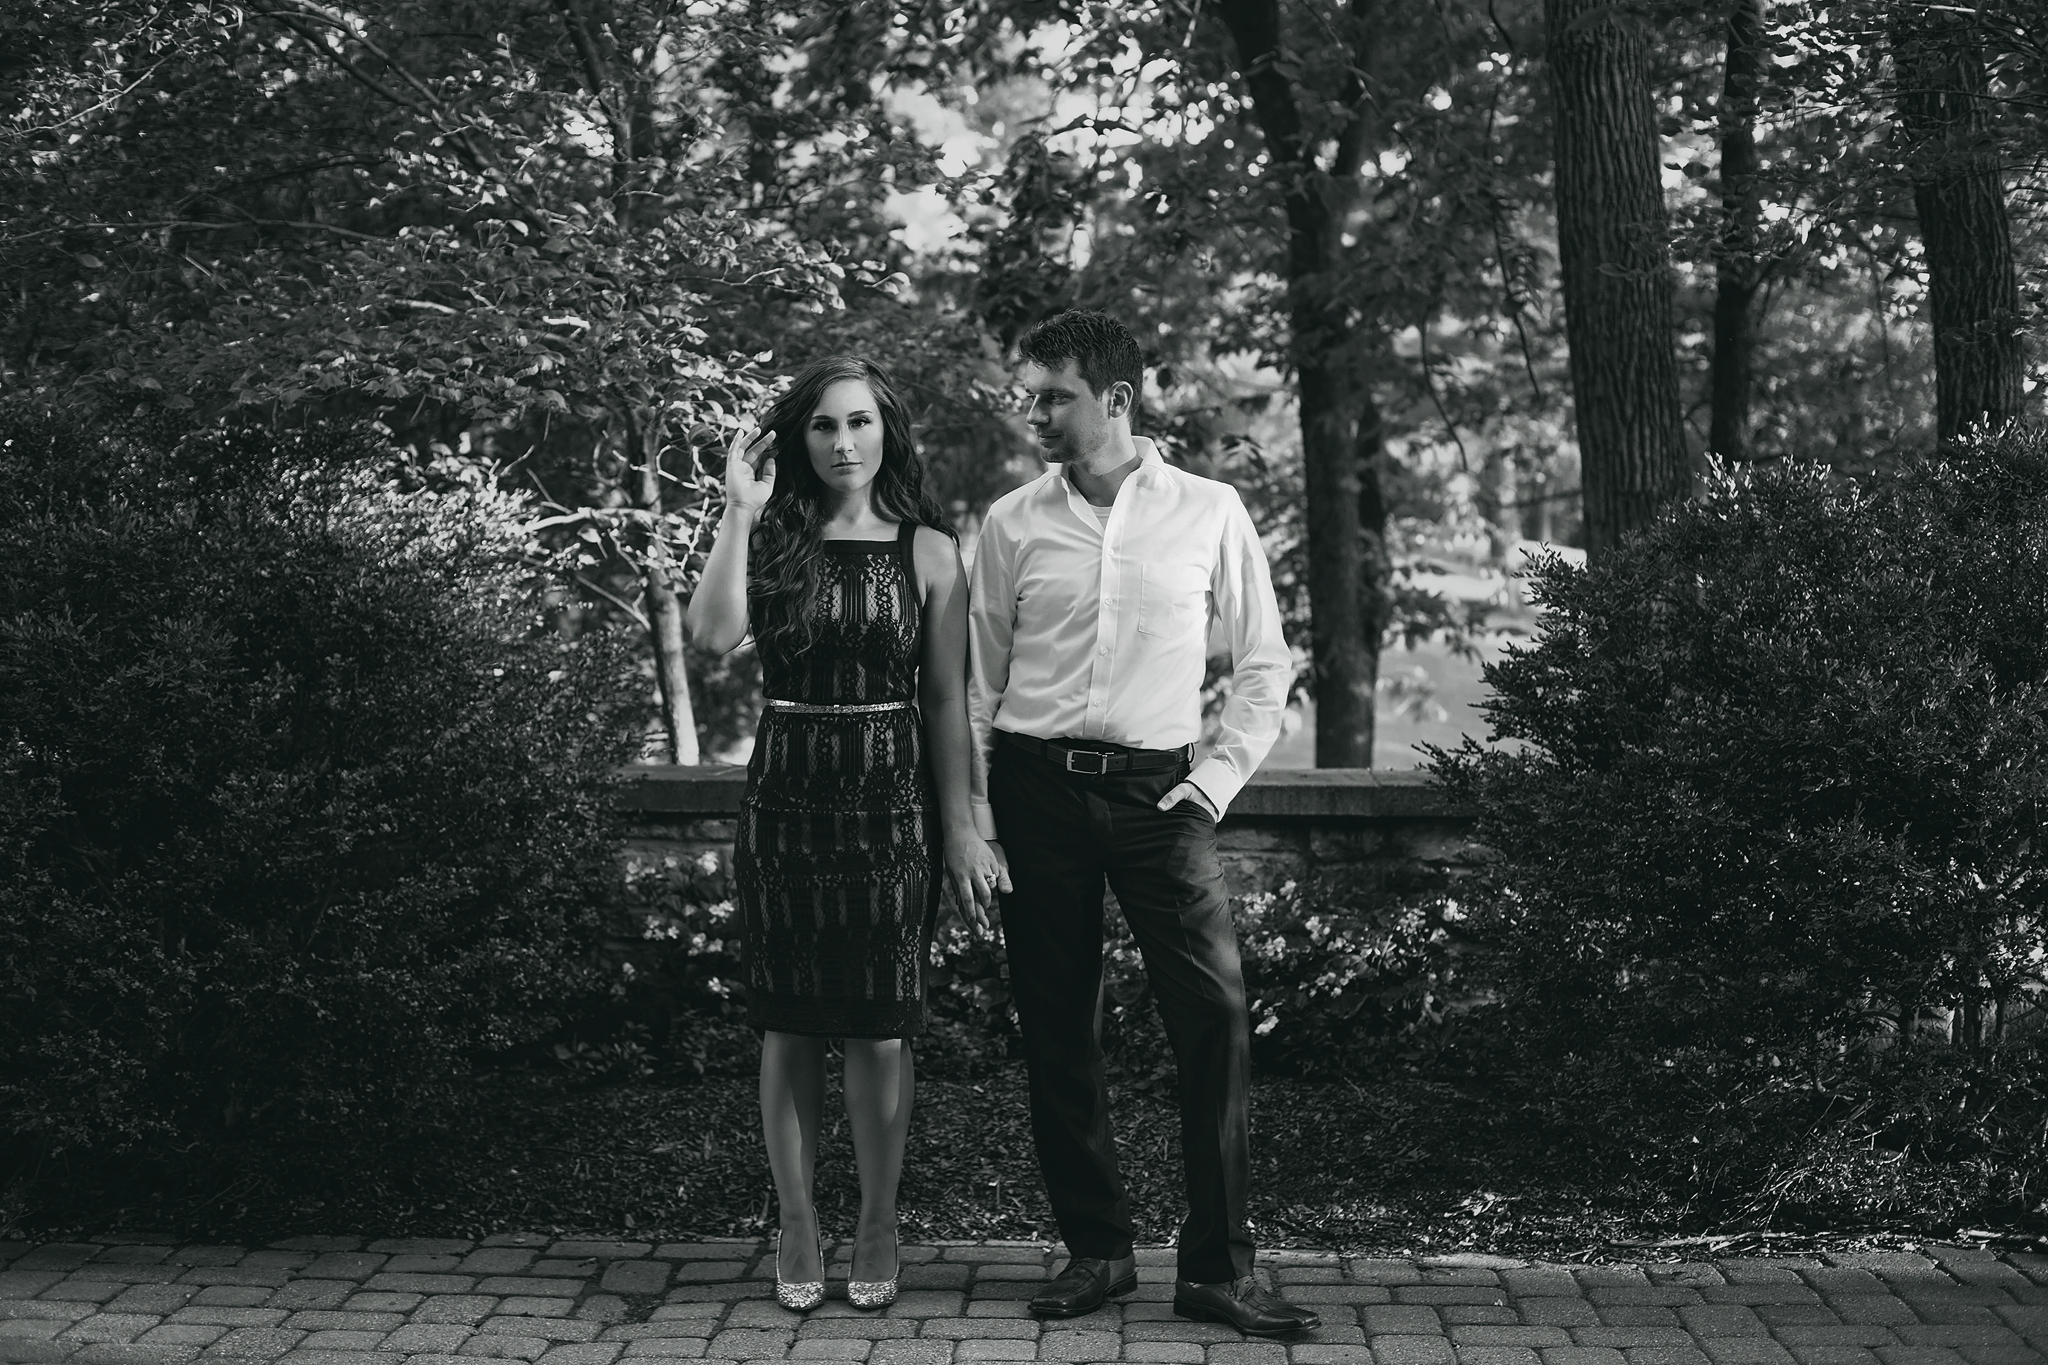 Cincinnati-and-Dayton-OH-Engagement-Session-and-Wedding-photographer-61.jpg